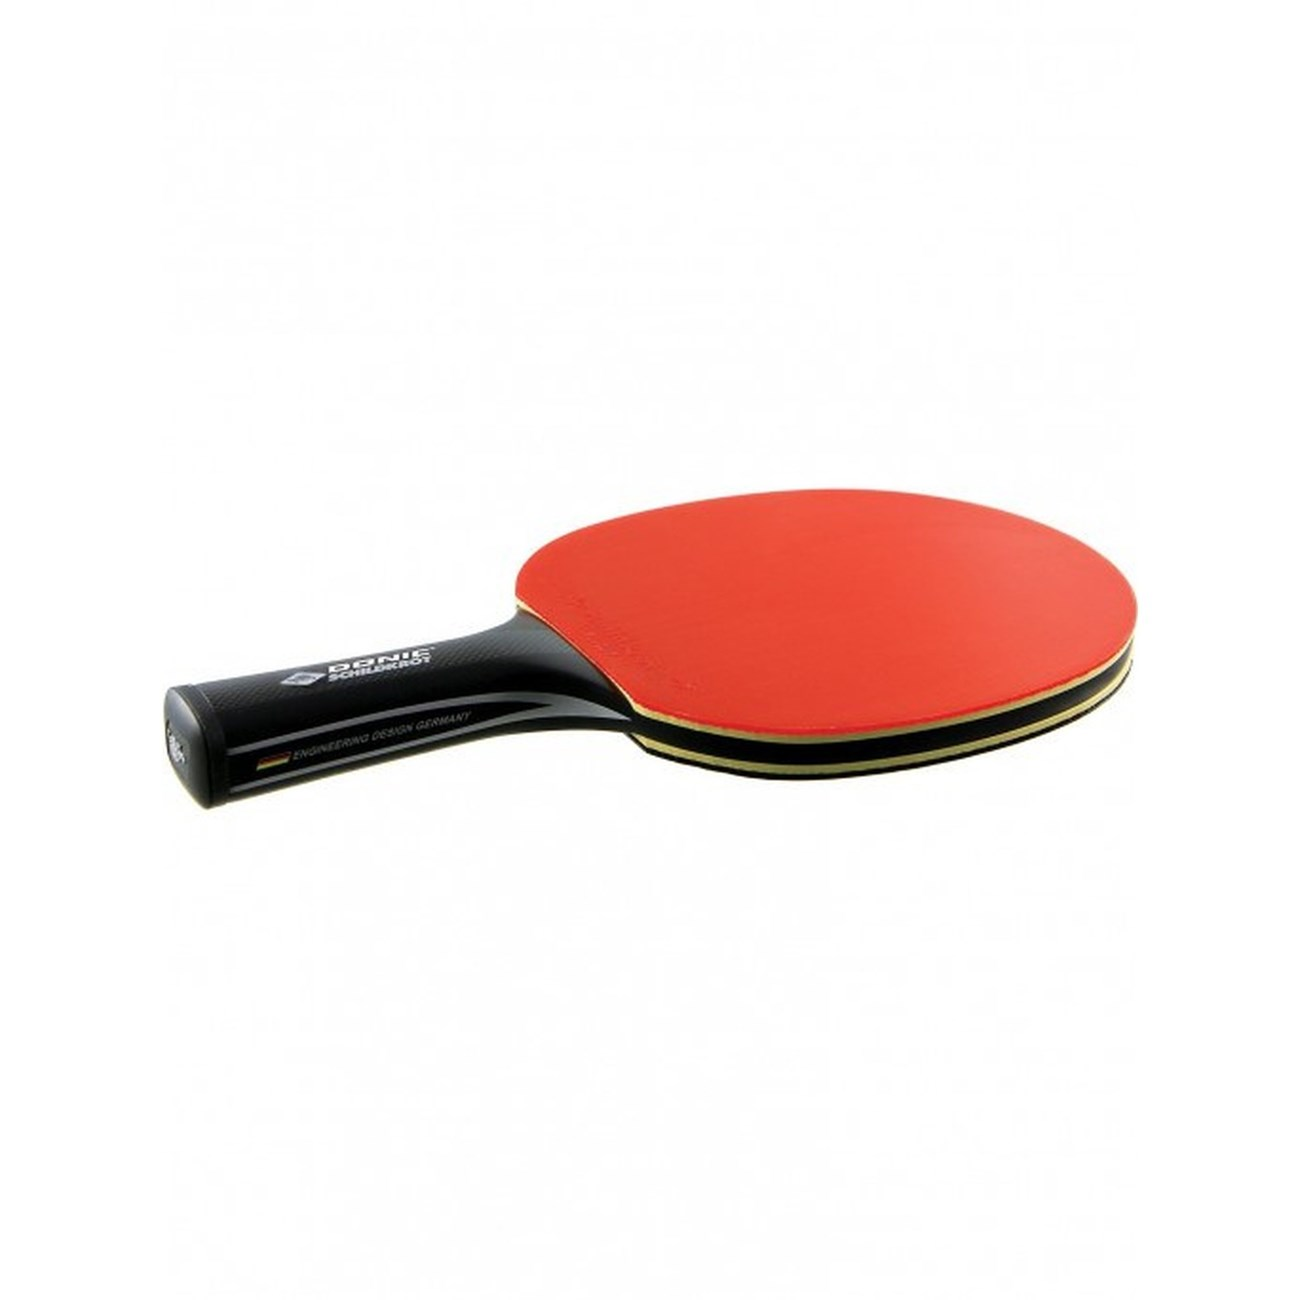 DONIC Ρακέτα ping pong CARBOTEC 900 253031 - INTERSPORT